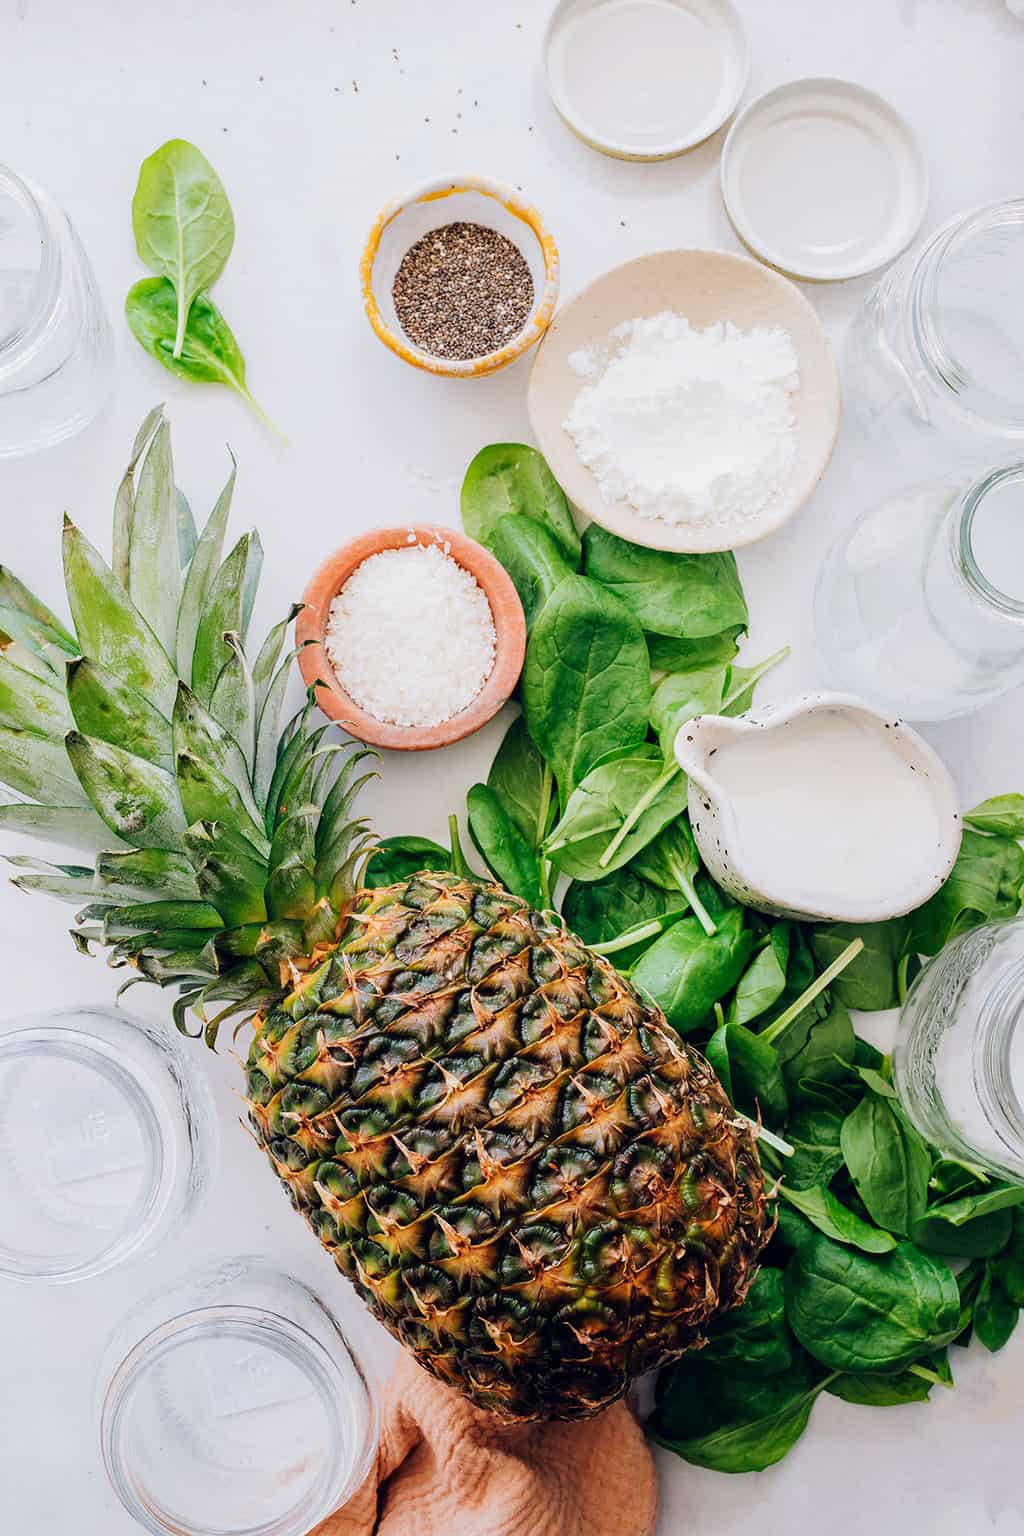 Big Batch Green Smoothie Recipe with Pineapple